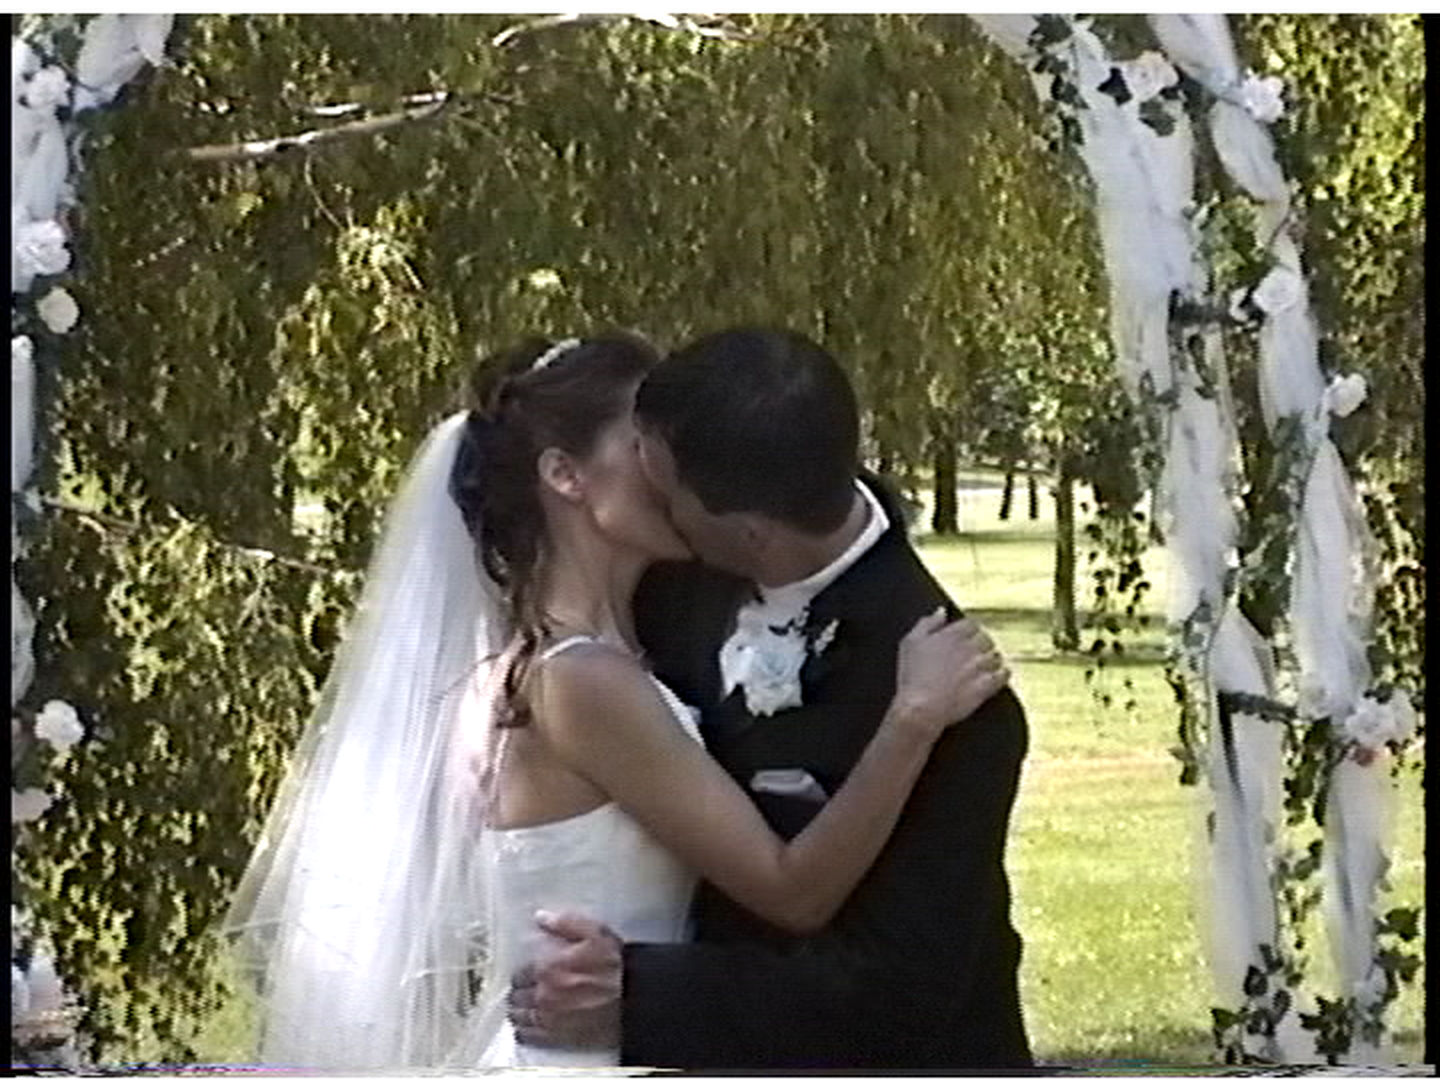 Click image for larger version  Name:Wedding P - 13-30 - WinDV L.png Views:2588 Size:1.95 MB ID:35575